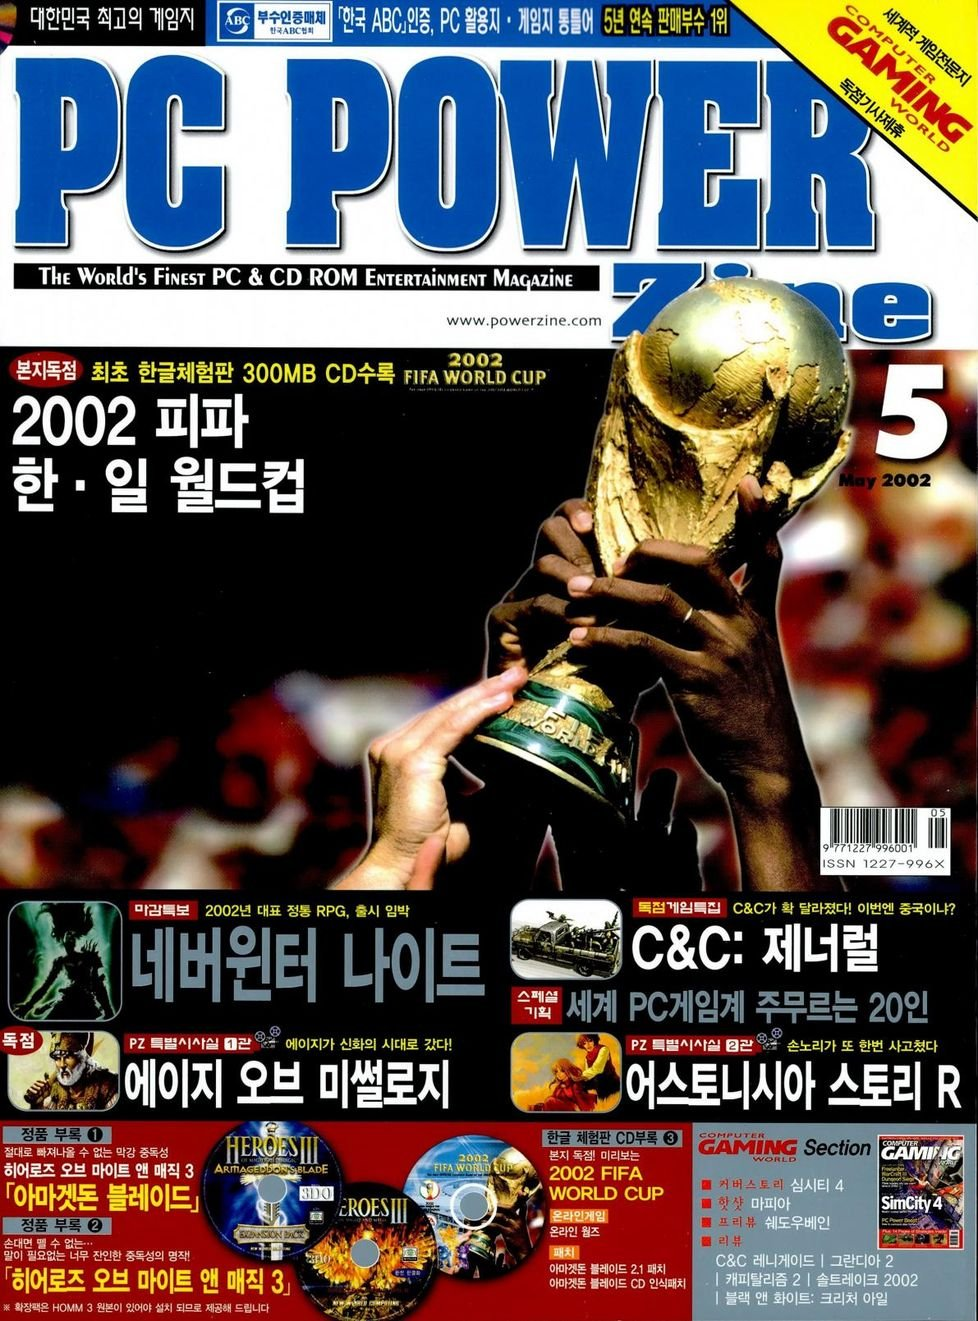 PC Power Zine Issue 082 (May 2002)